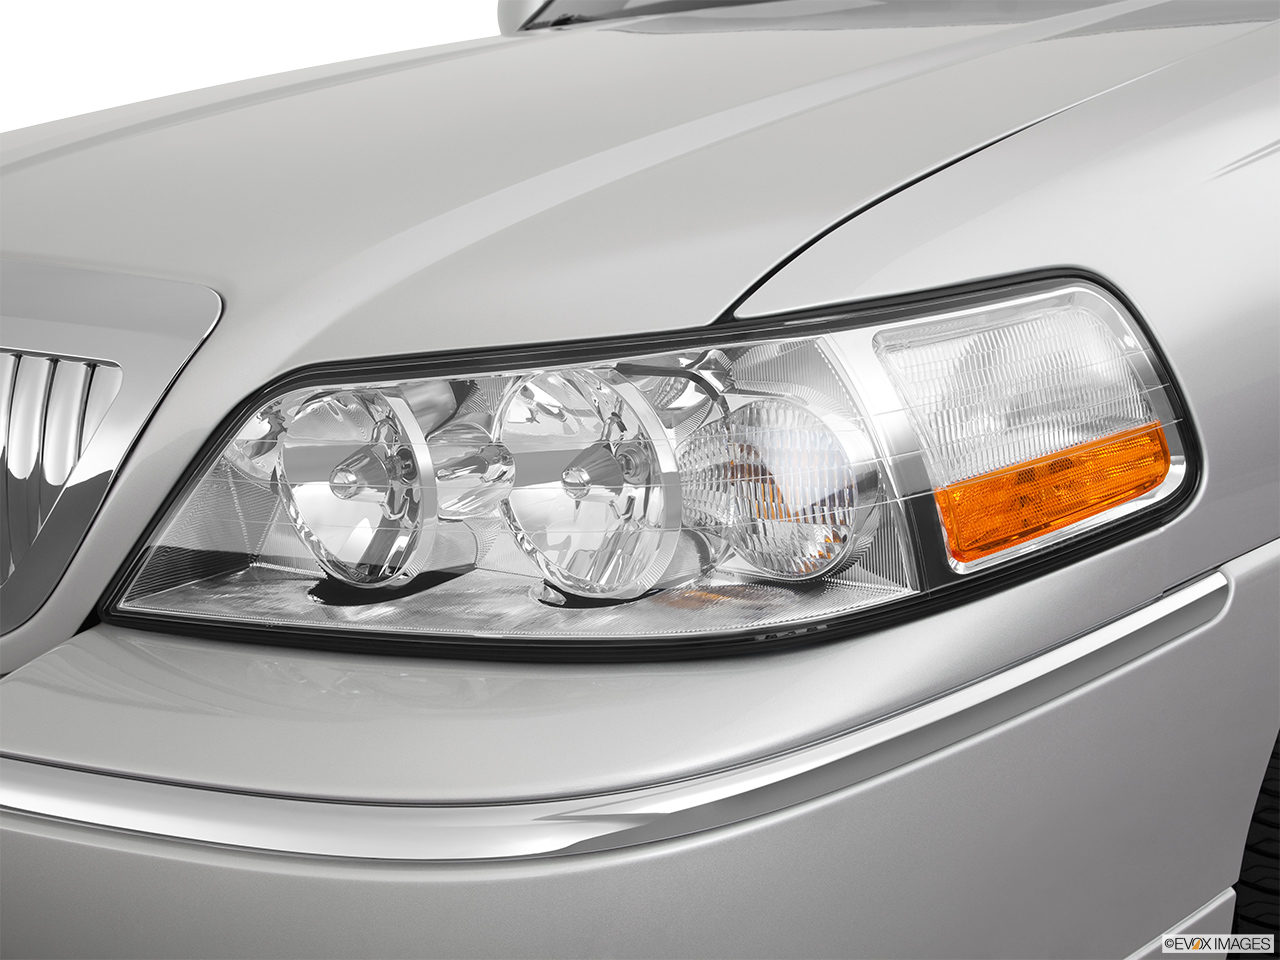 2011 Lincoln Town Car Signature Limited Drivers Side Headlight.